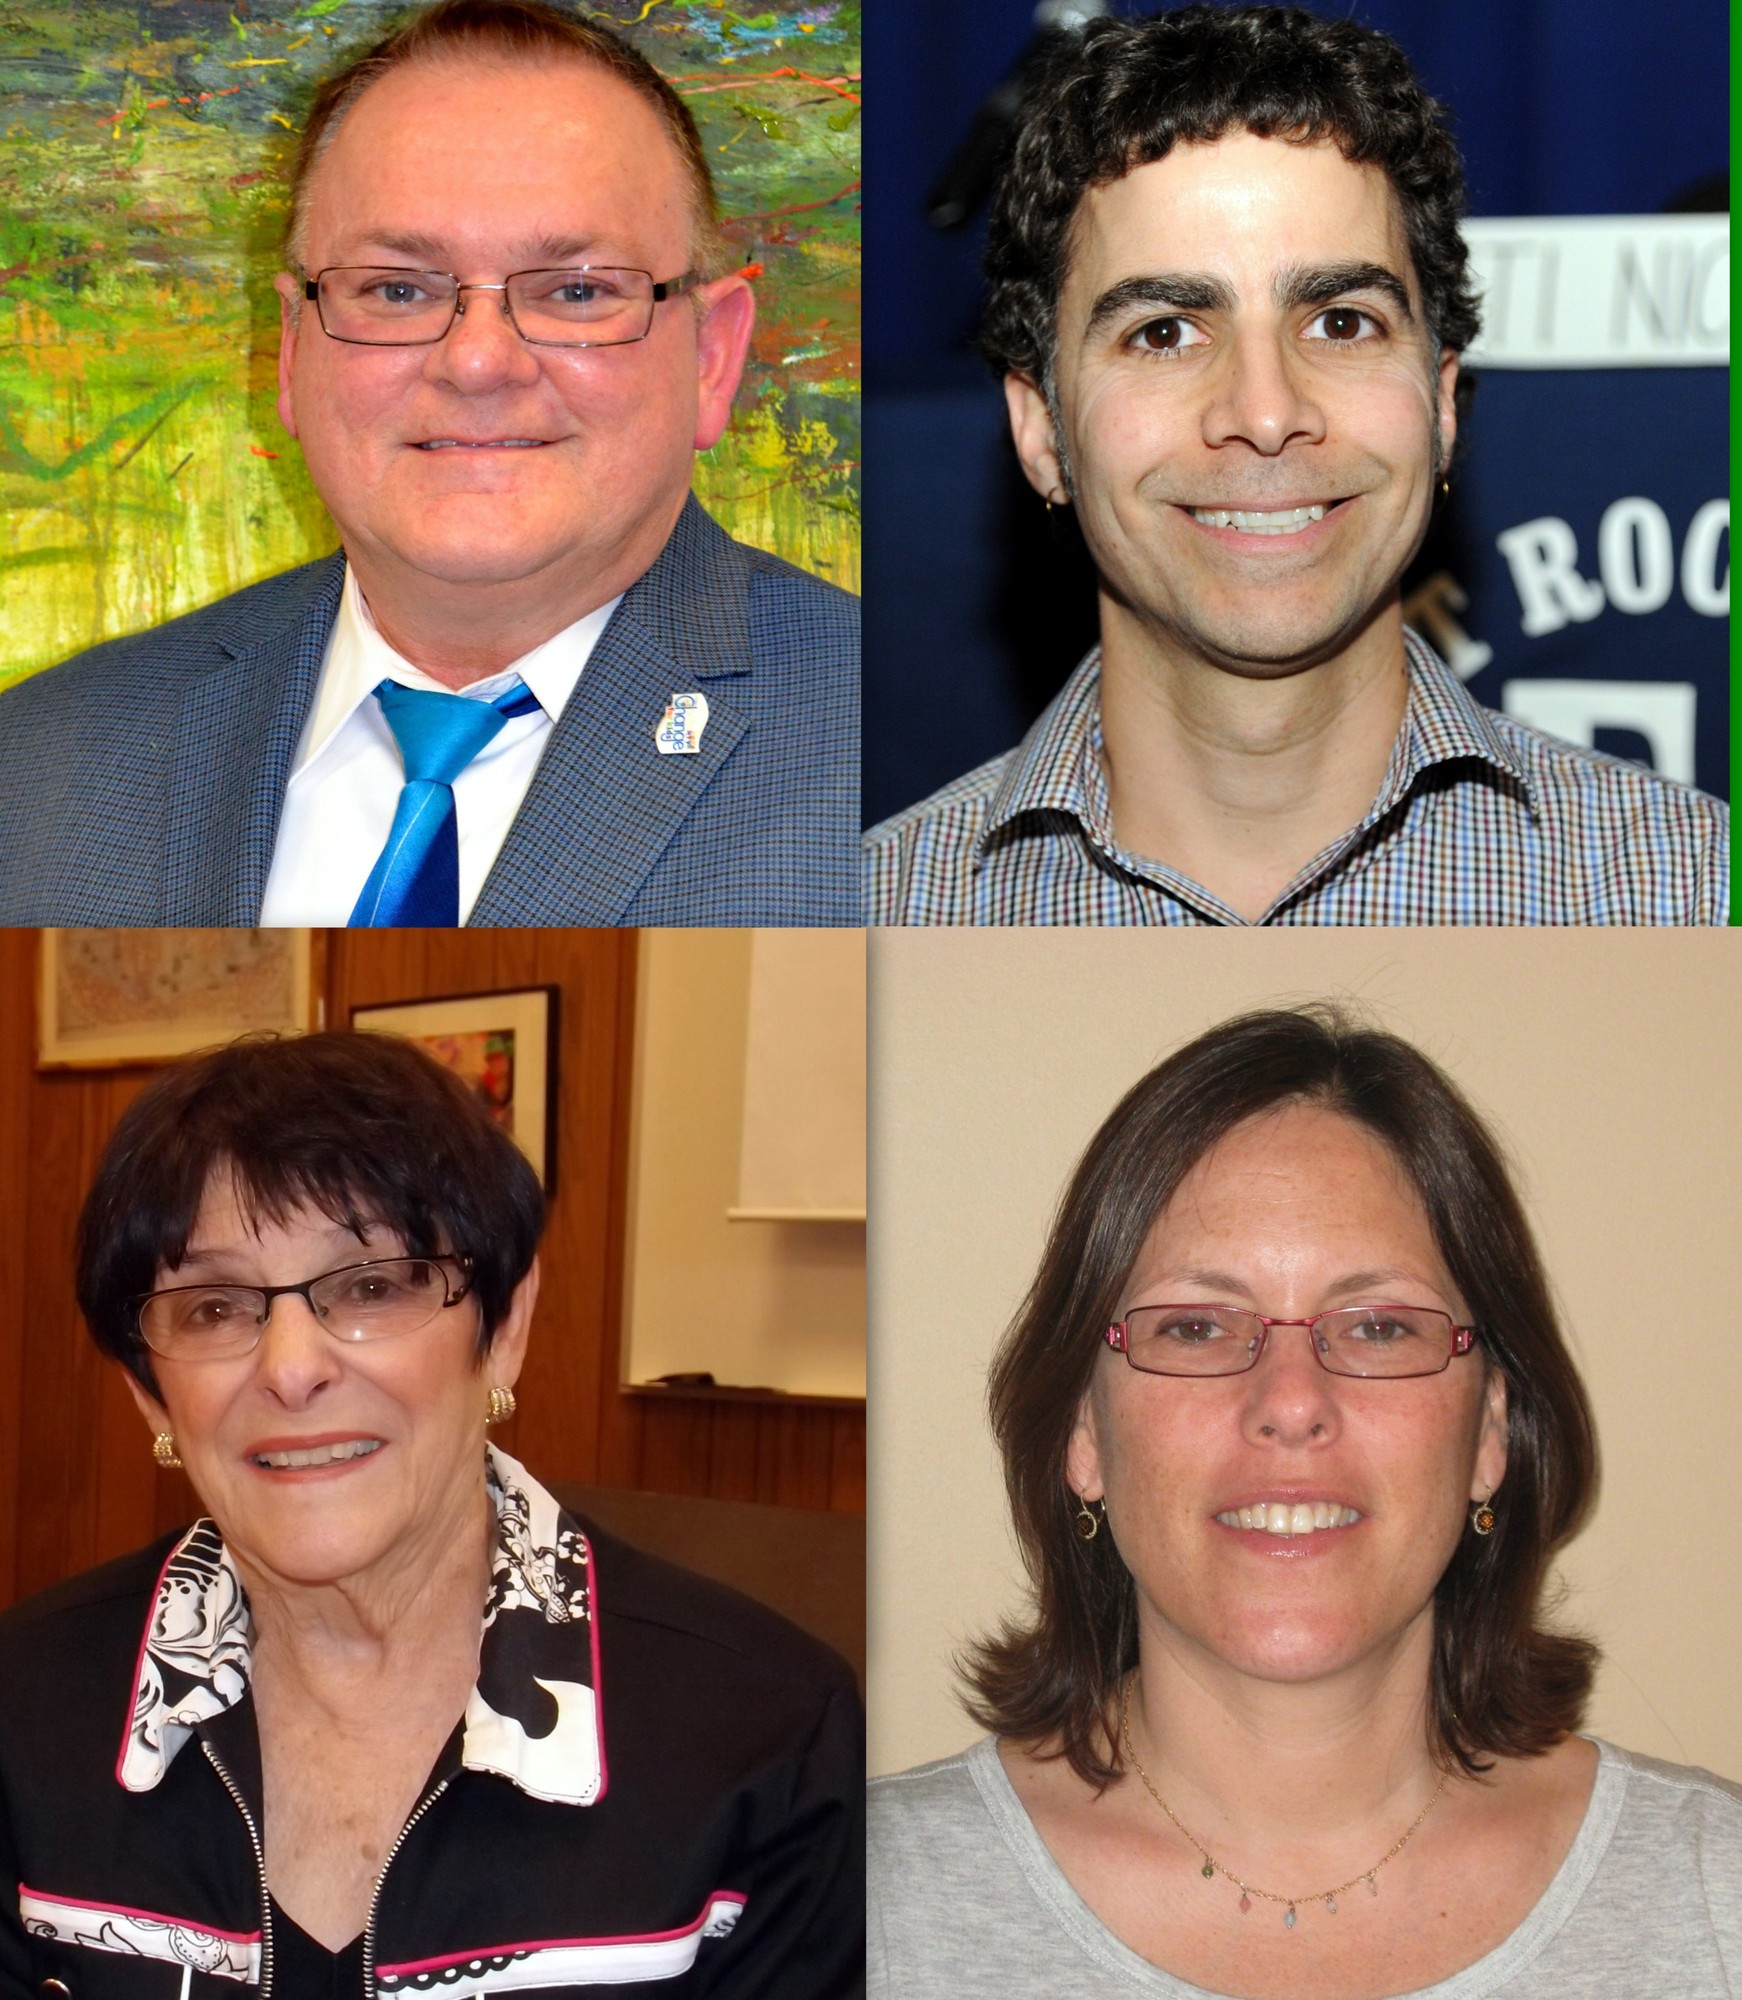 School Board trustees clockwise from to left: Neil Schloth, Keith Gamache, Ellen Marcus and Alicemarie Bresnihan.